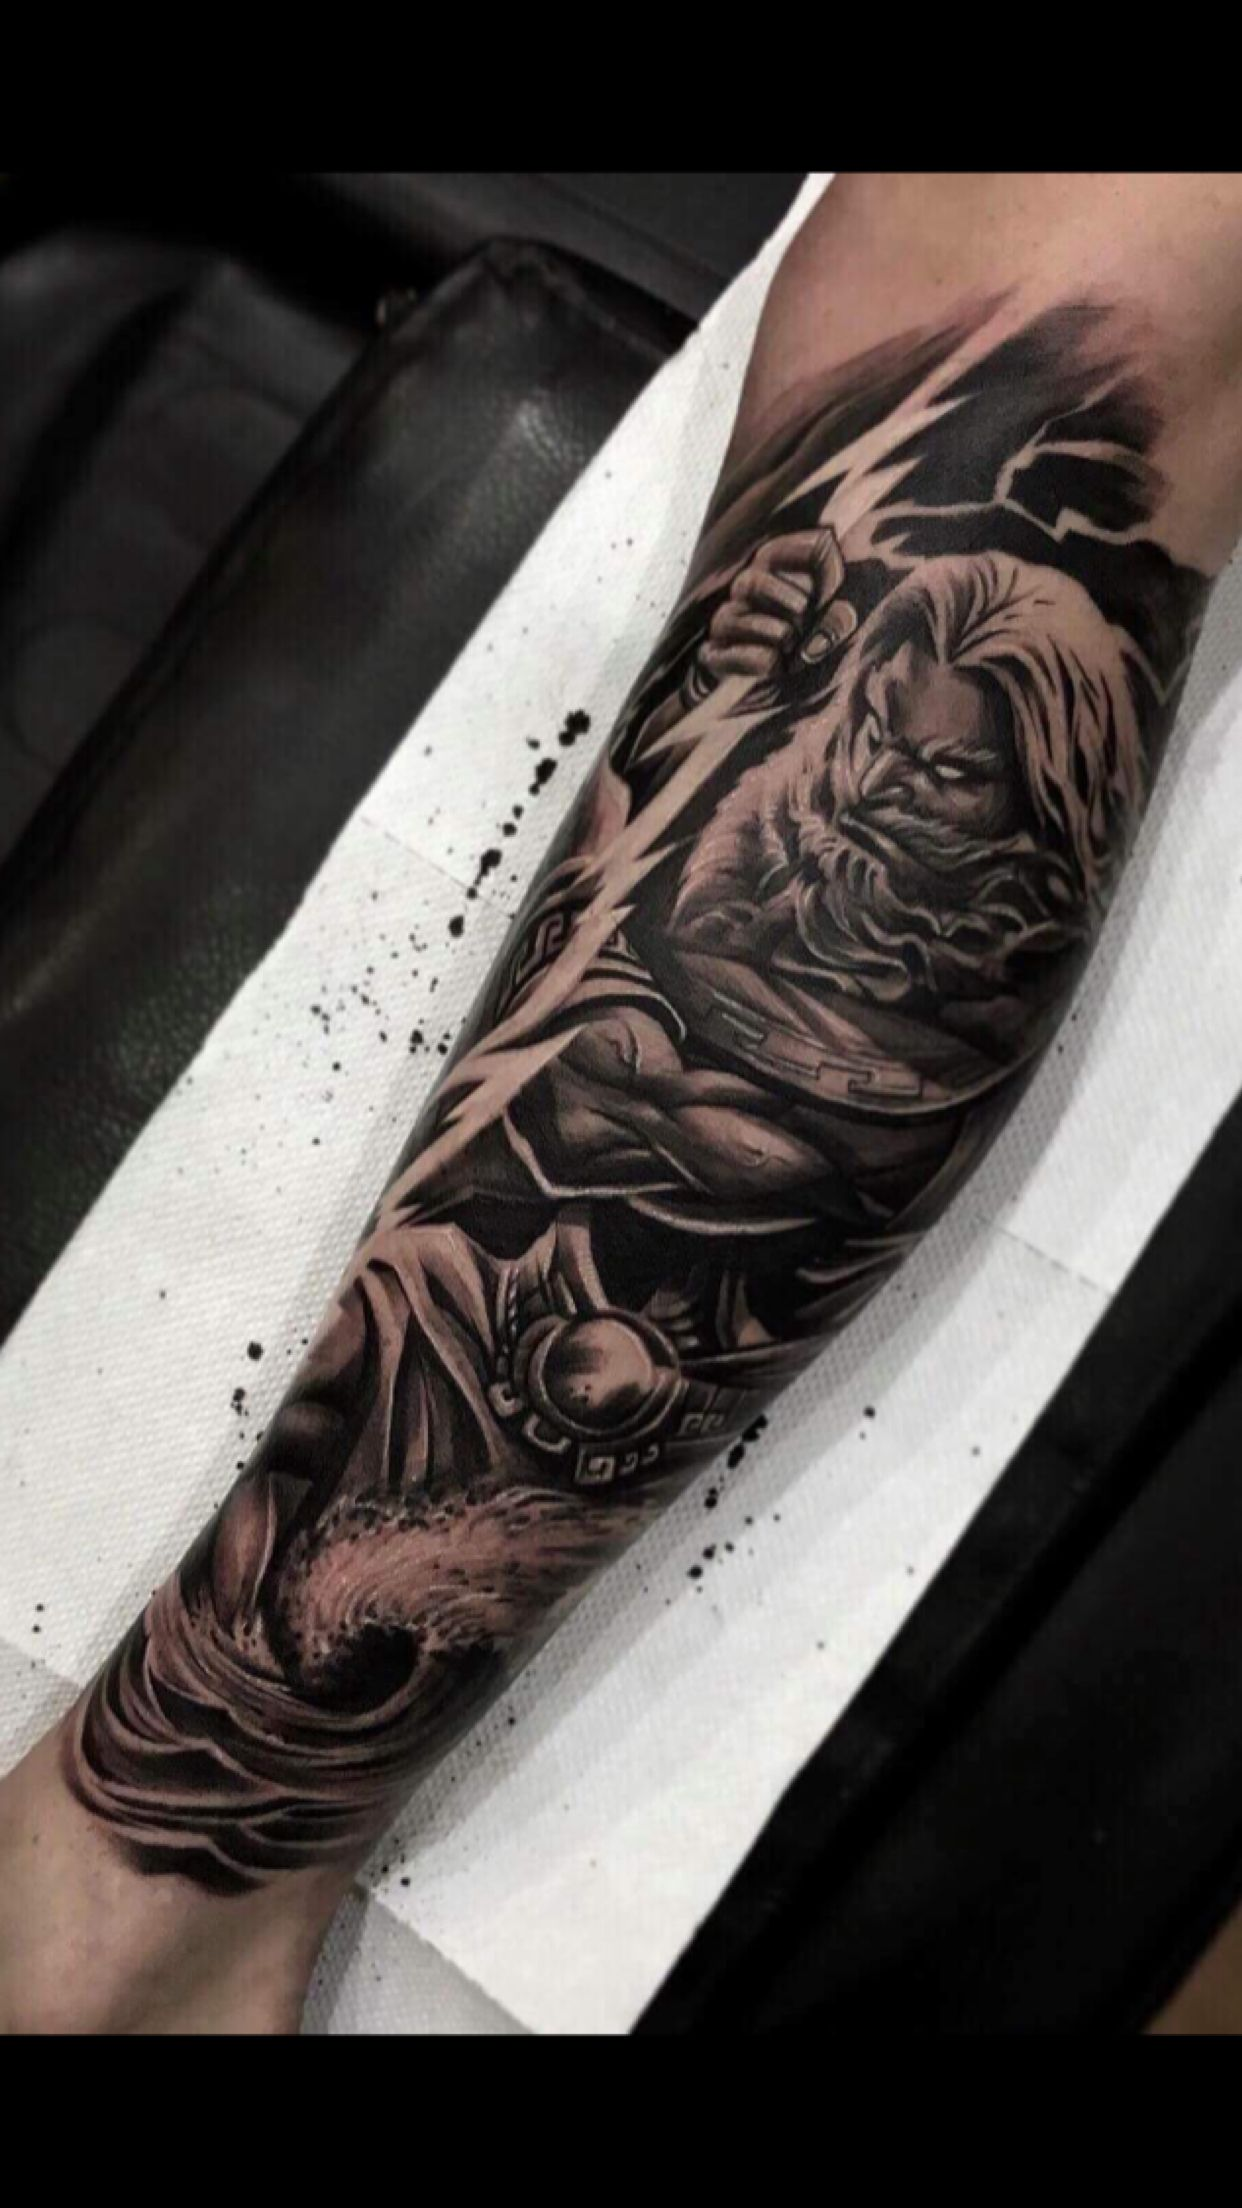 Zeus Tattoo Done By Dodepras Lion Ink Zeus Tattoo Projects To